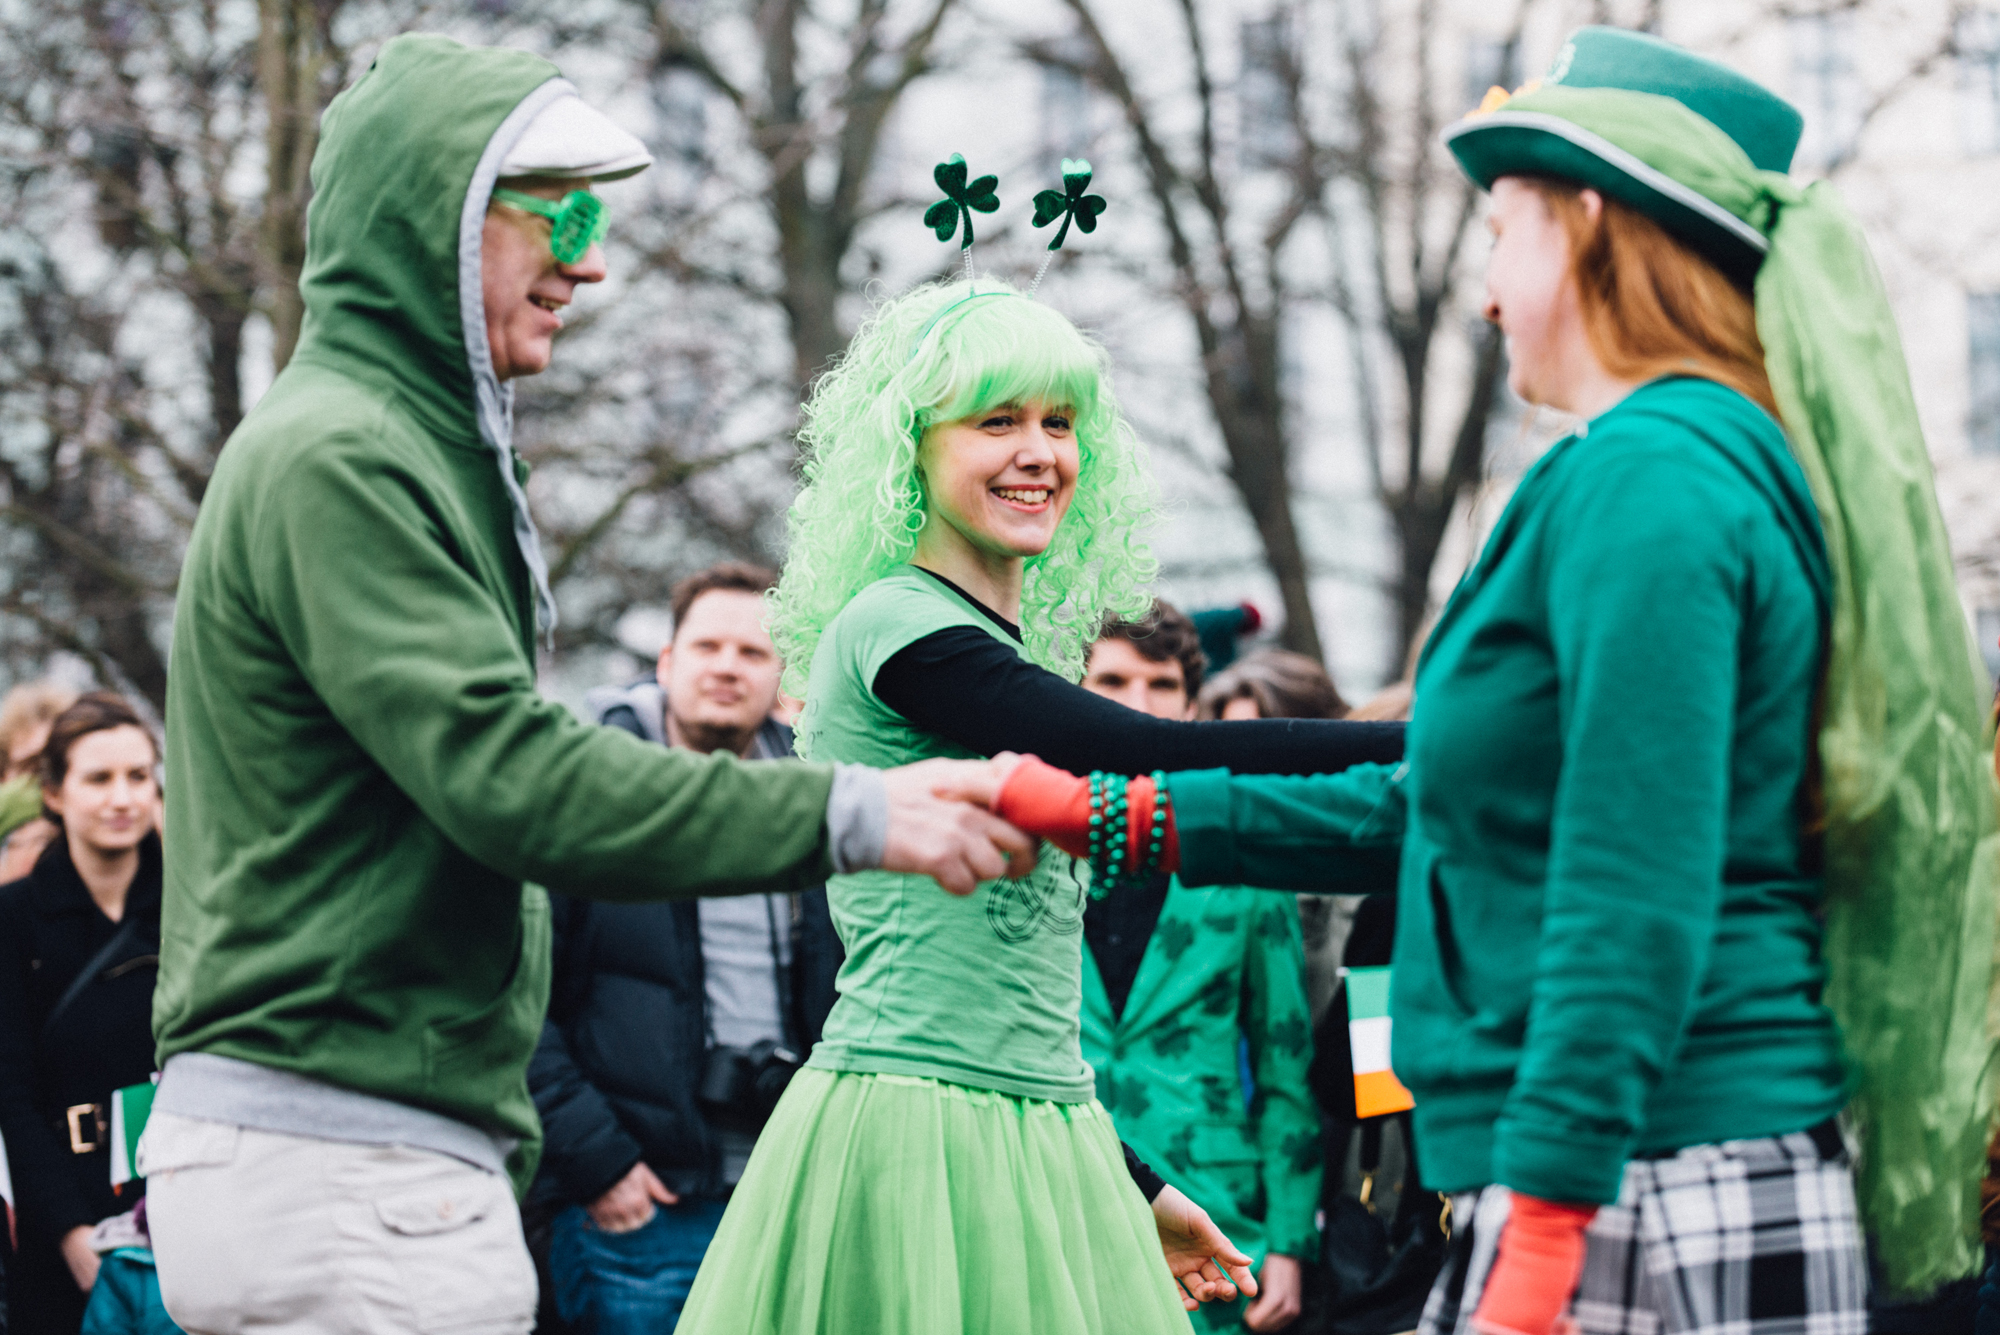 st-patricks-day-berlin-©-camille-blake-13.jpg